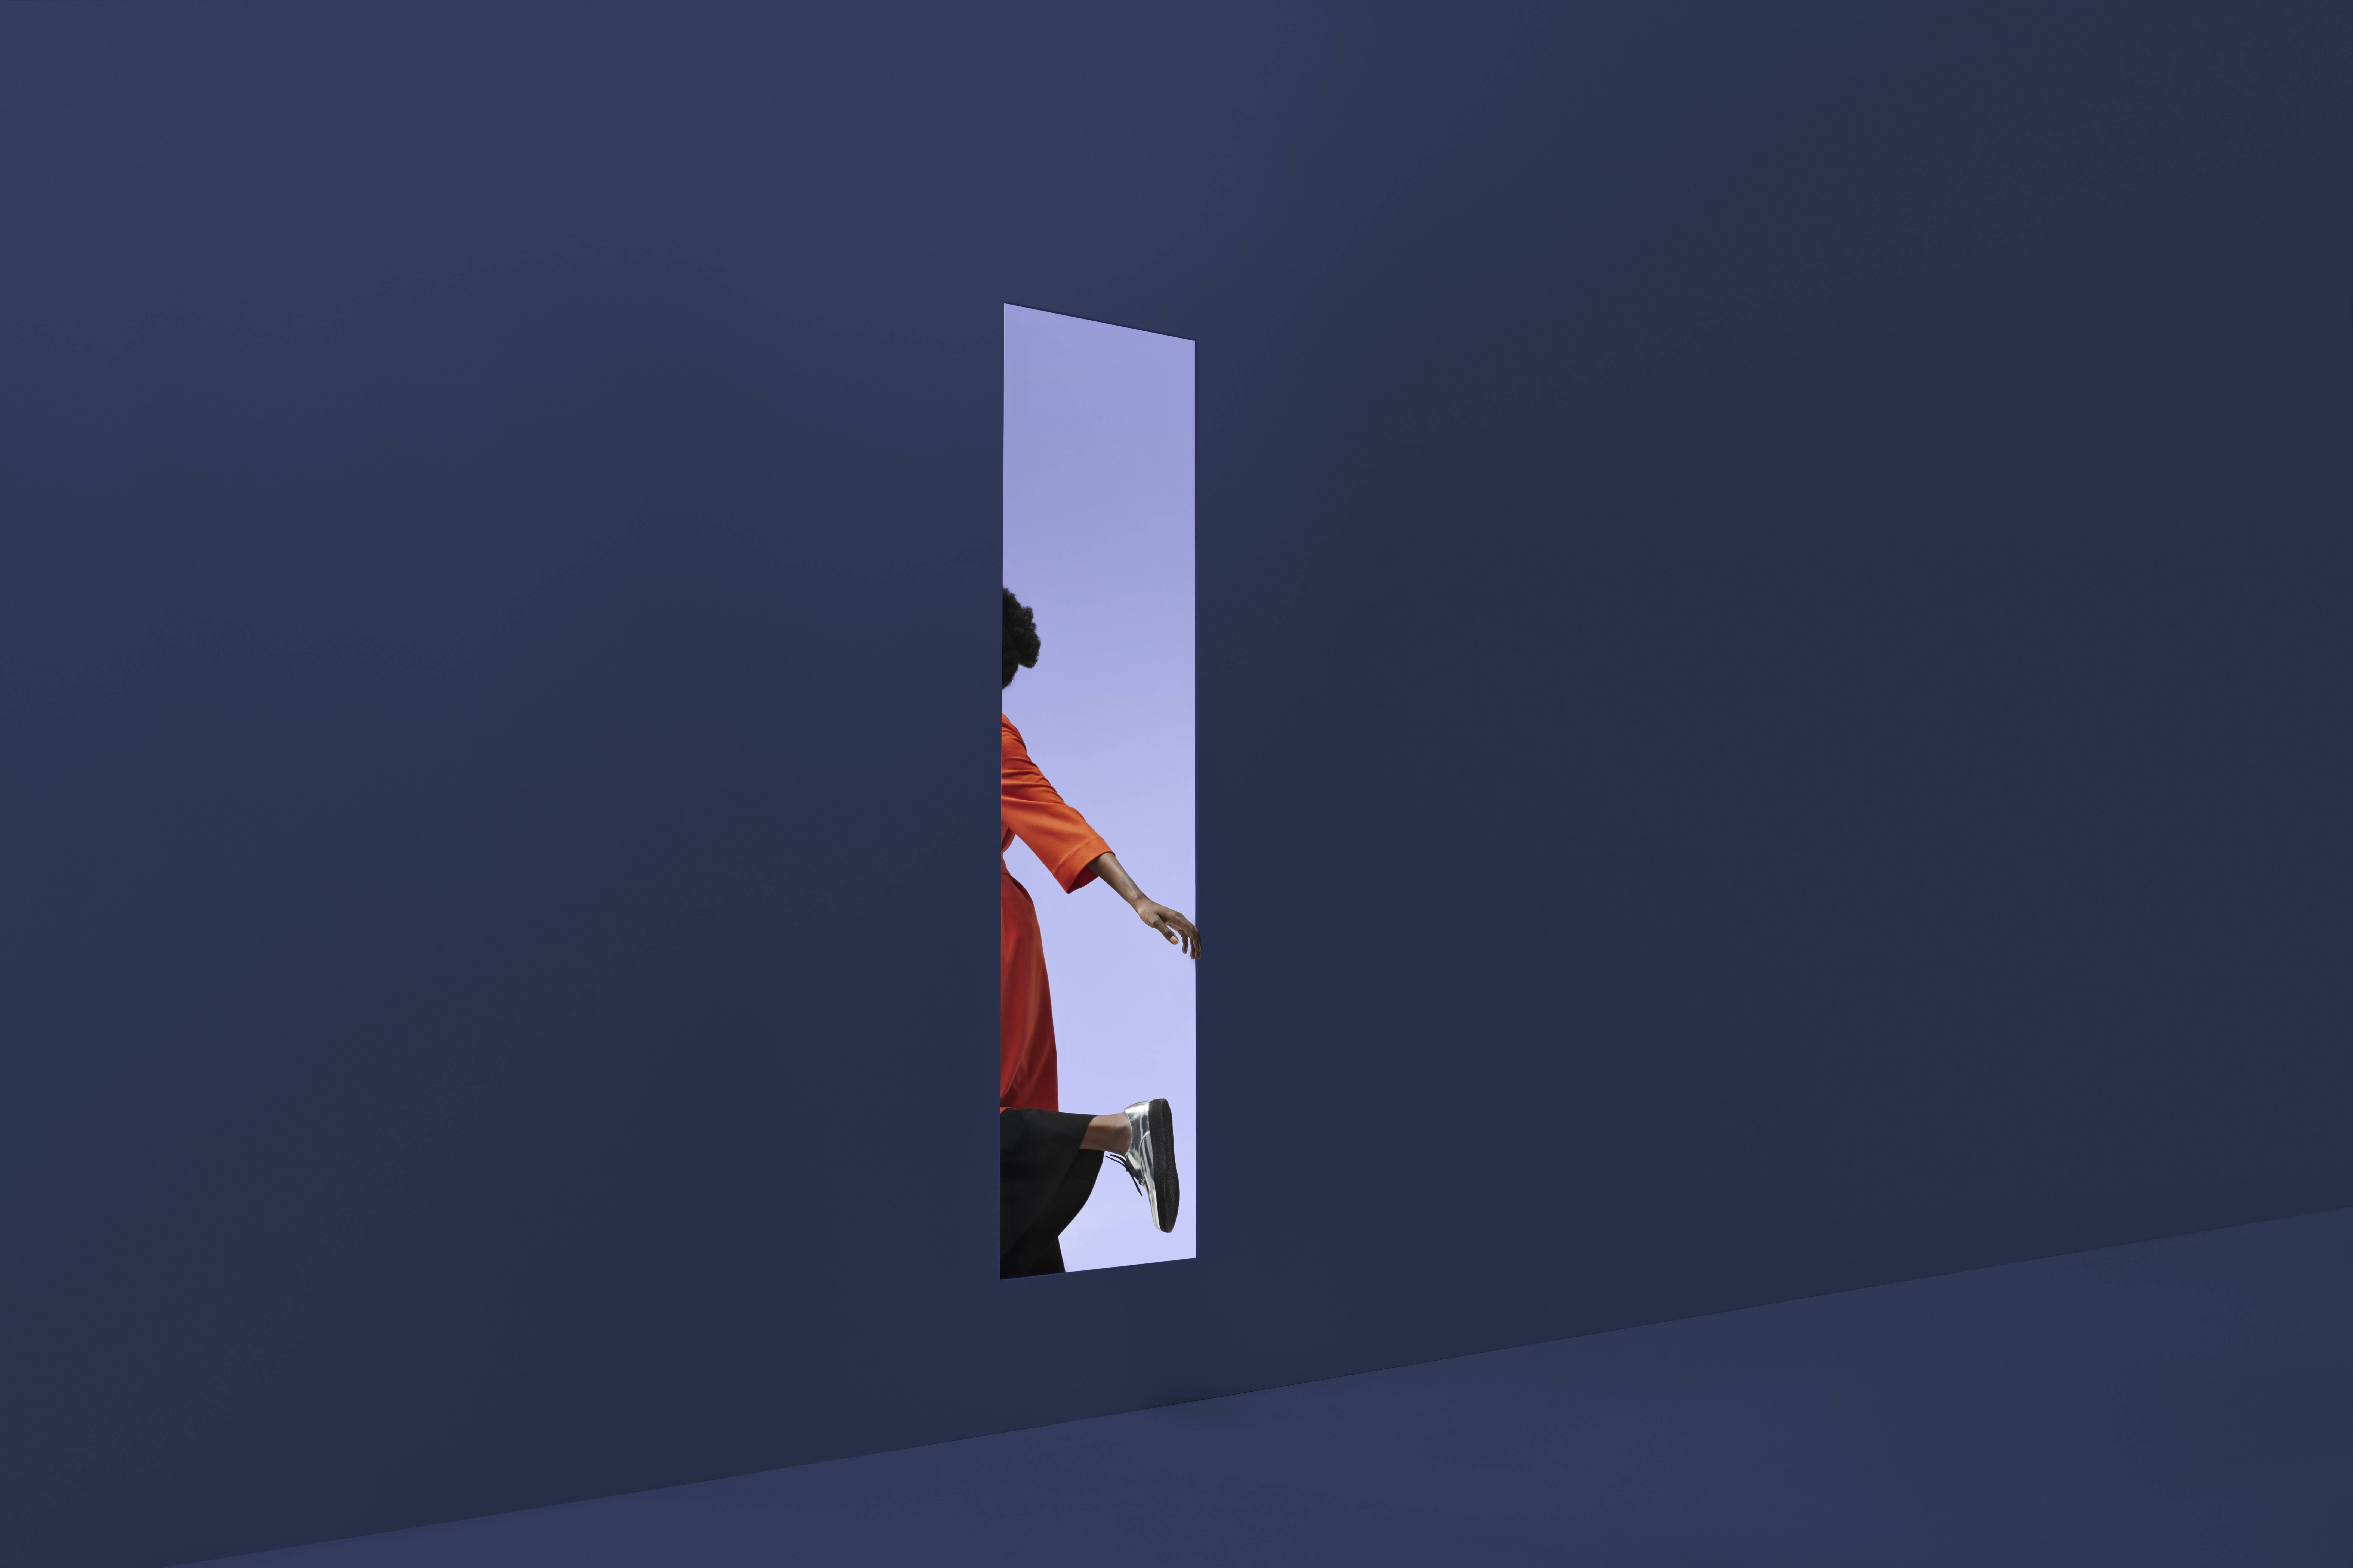 woman's arm and leg are visible as she passes through a doorway